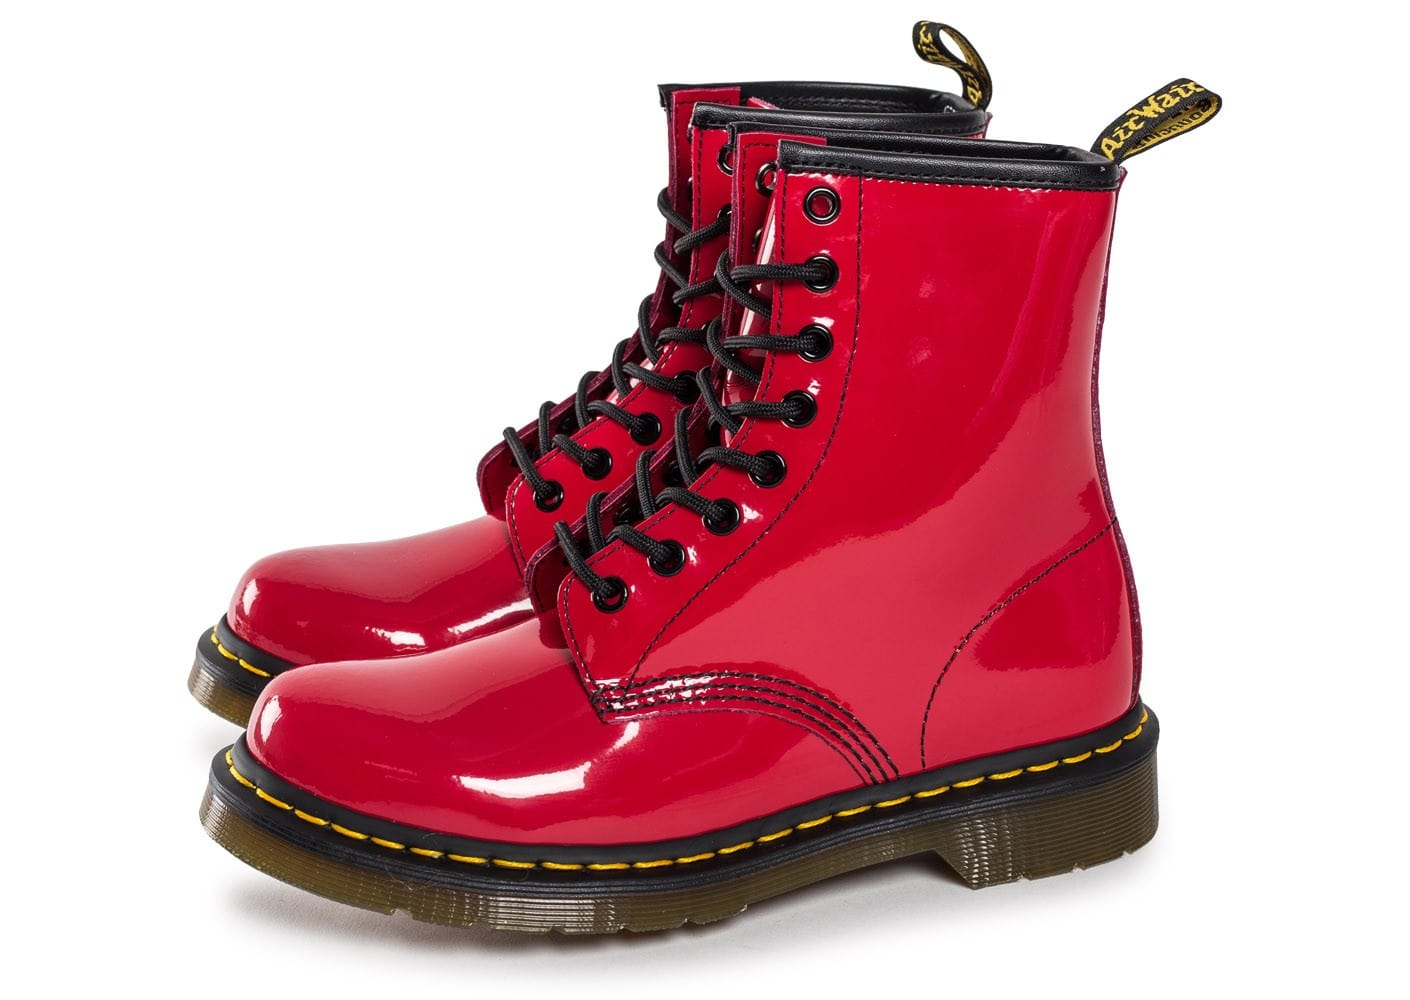 dr martens 1460 rouge vernis chaussures femme chausport